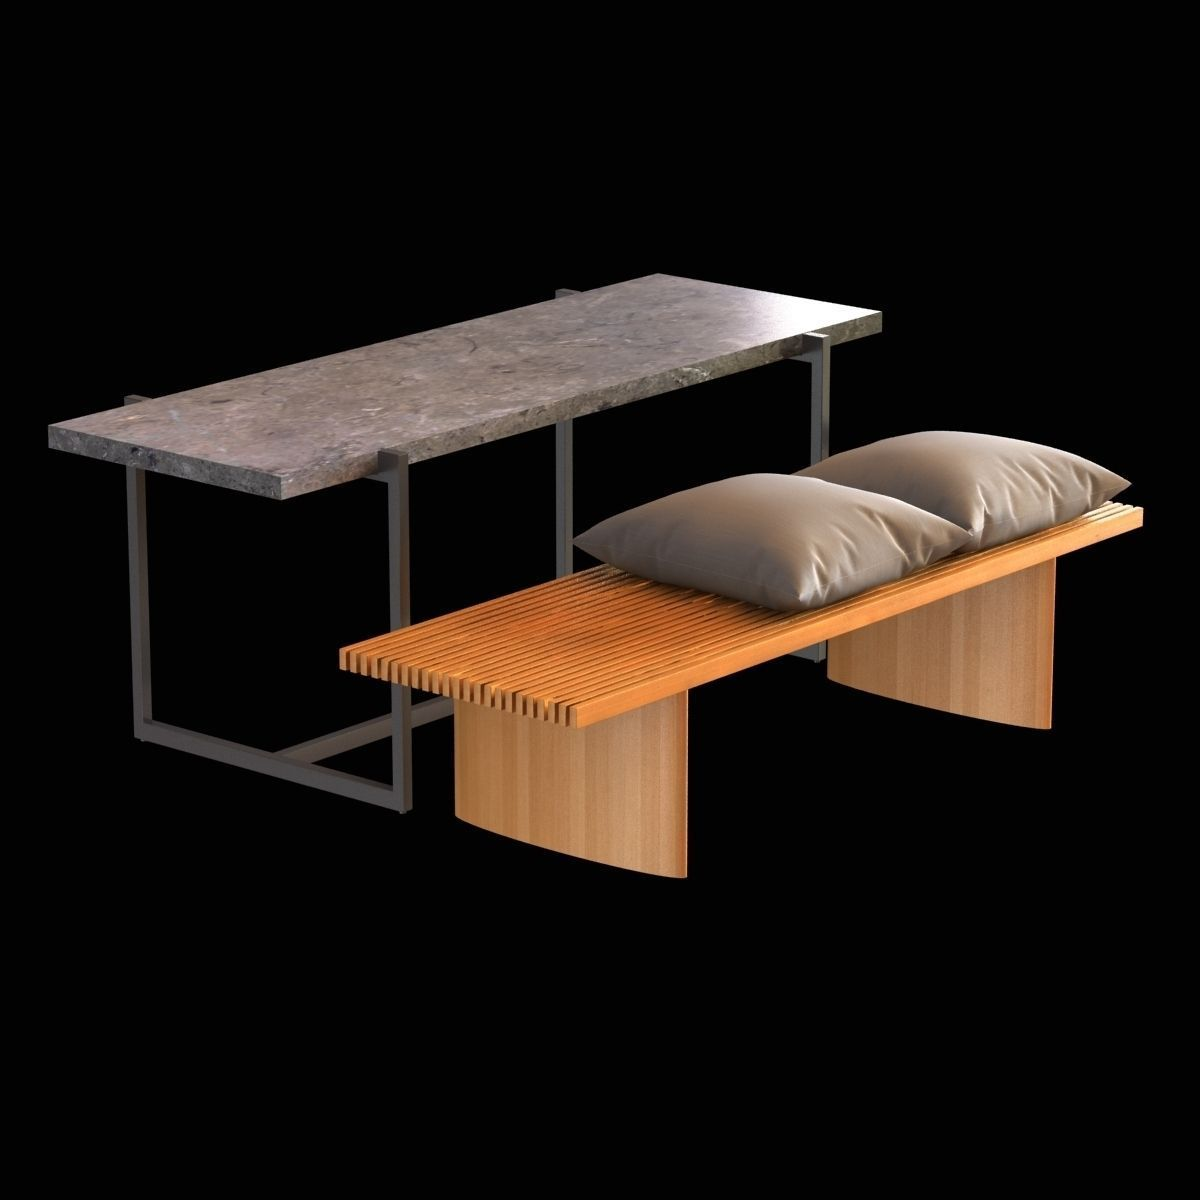 Stone And Wood Bench: Wood Bench With Cushions And Stone Table 3D Model .max